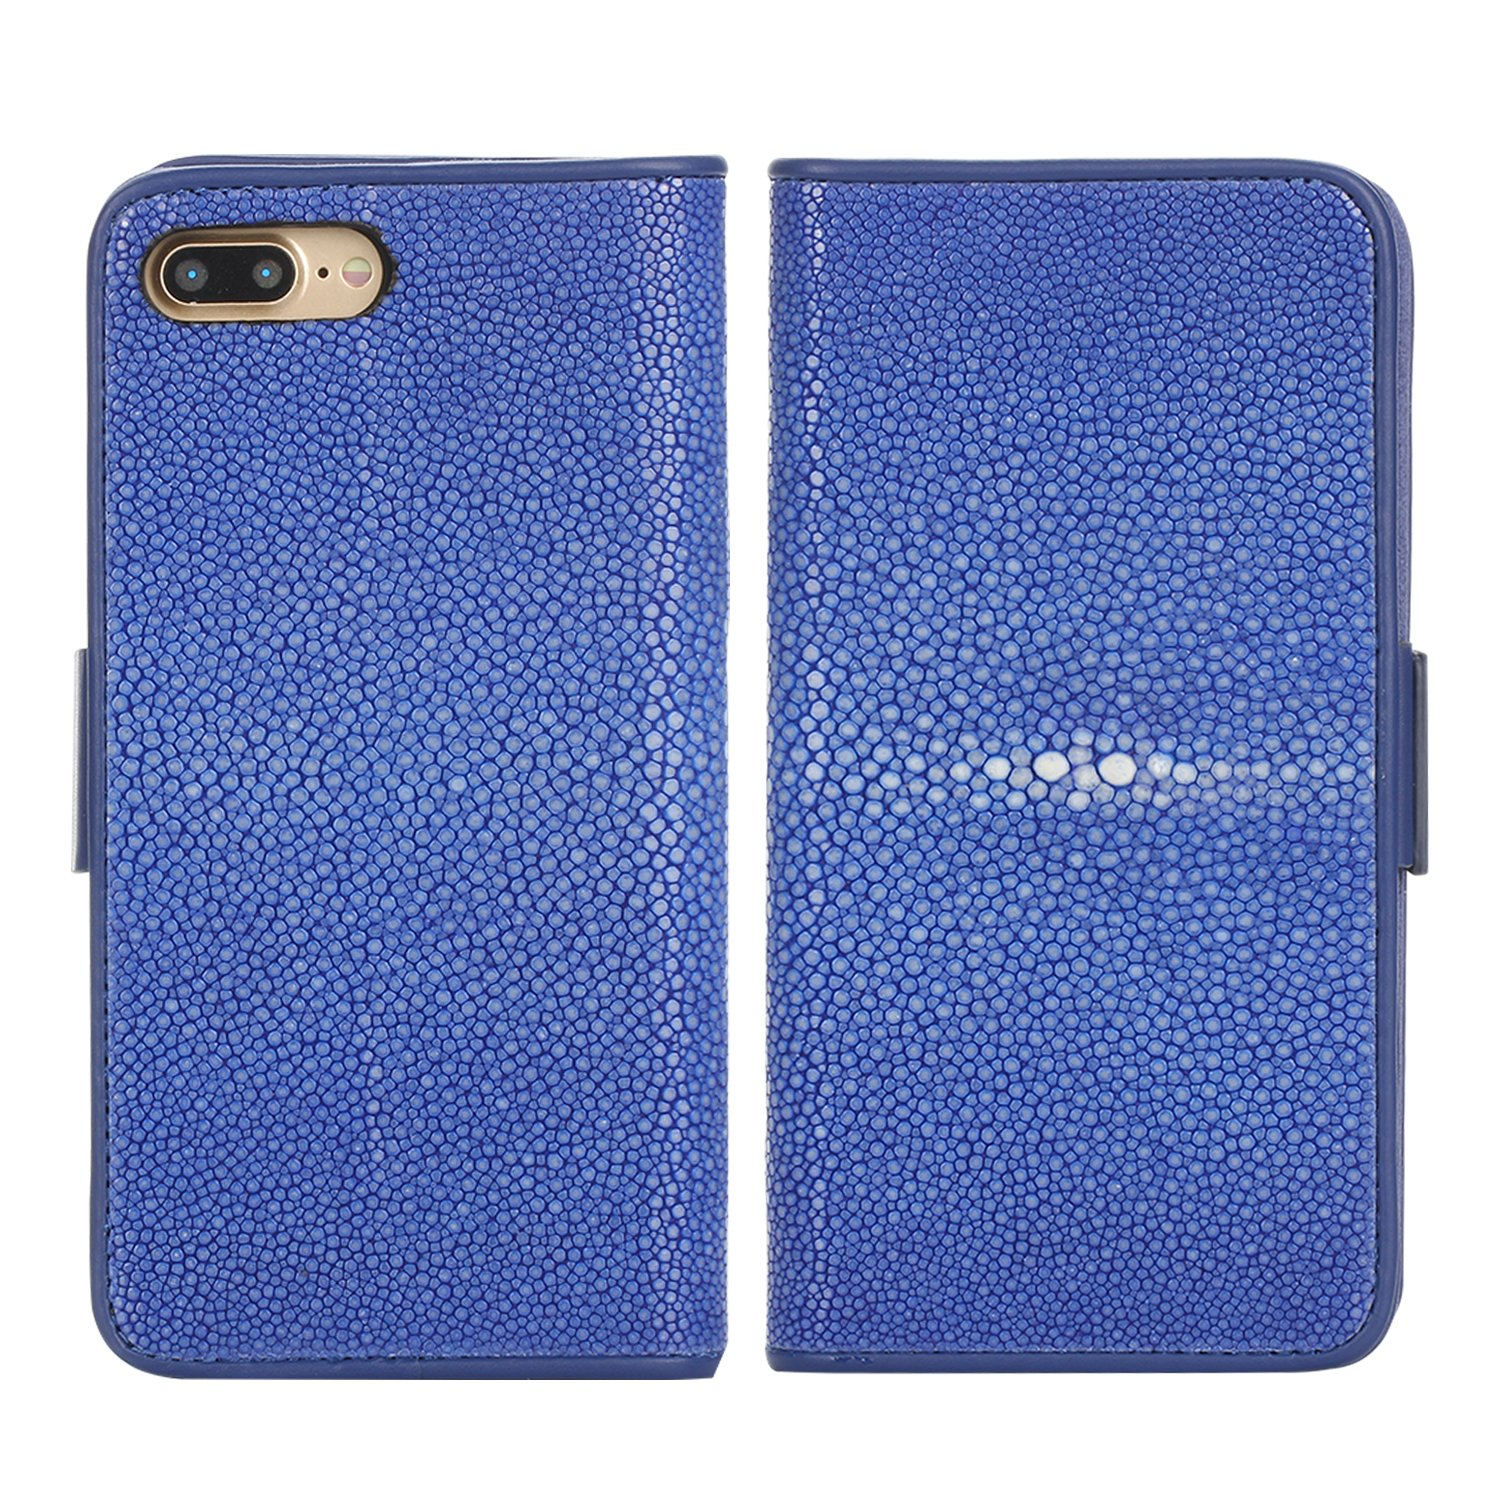 Luxury Wallet Cover For iPhone 7 Plus and 8 Plus (5,5)'' - Hand Made from Genuine Stingray Fish Skin, Premium Case by Trop Saint - Blue